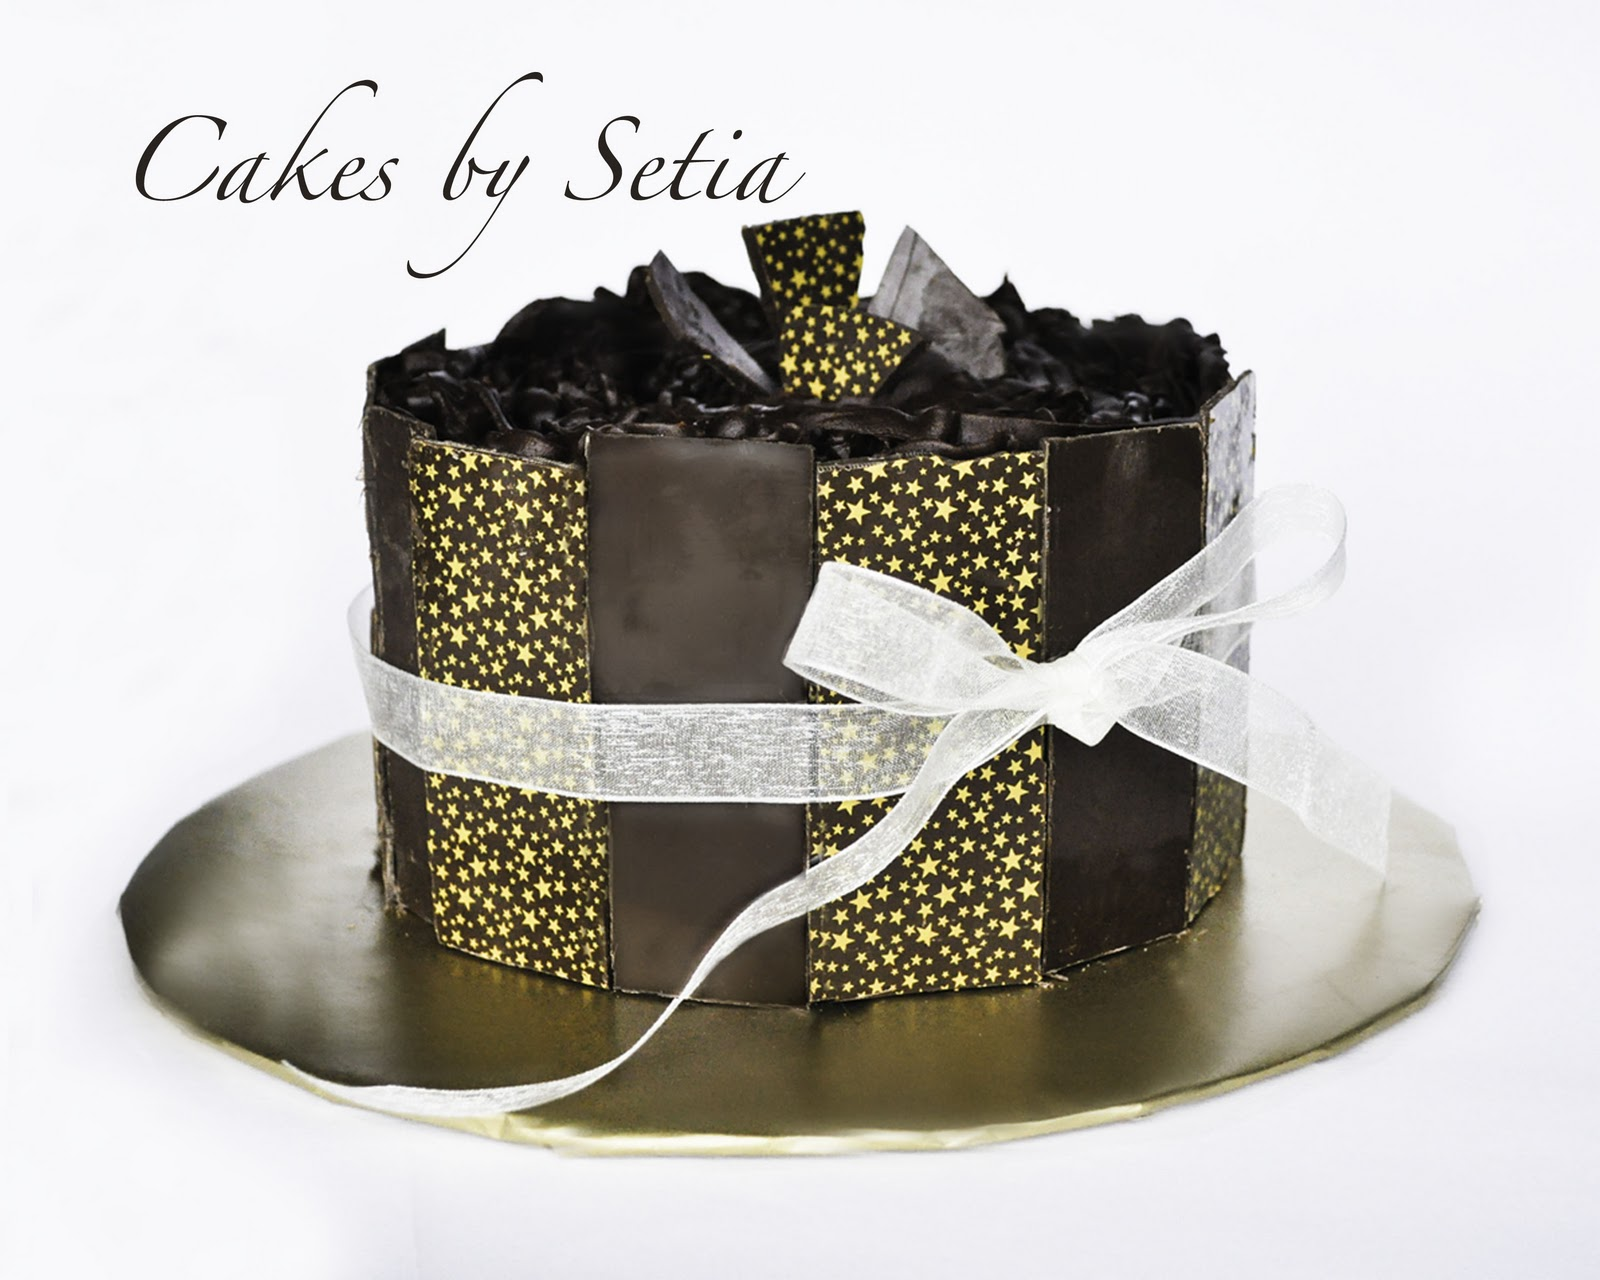 Cakes by Setia: Chocolate Panel Cake with Stars